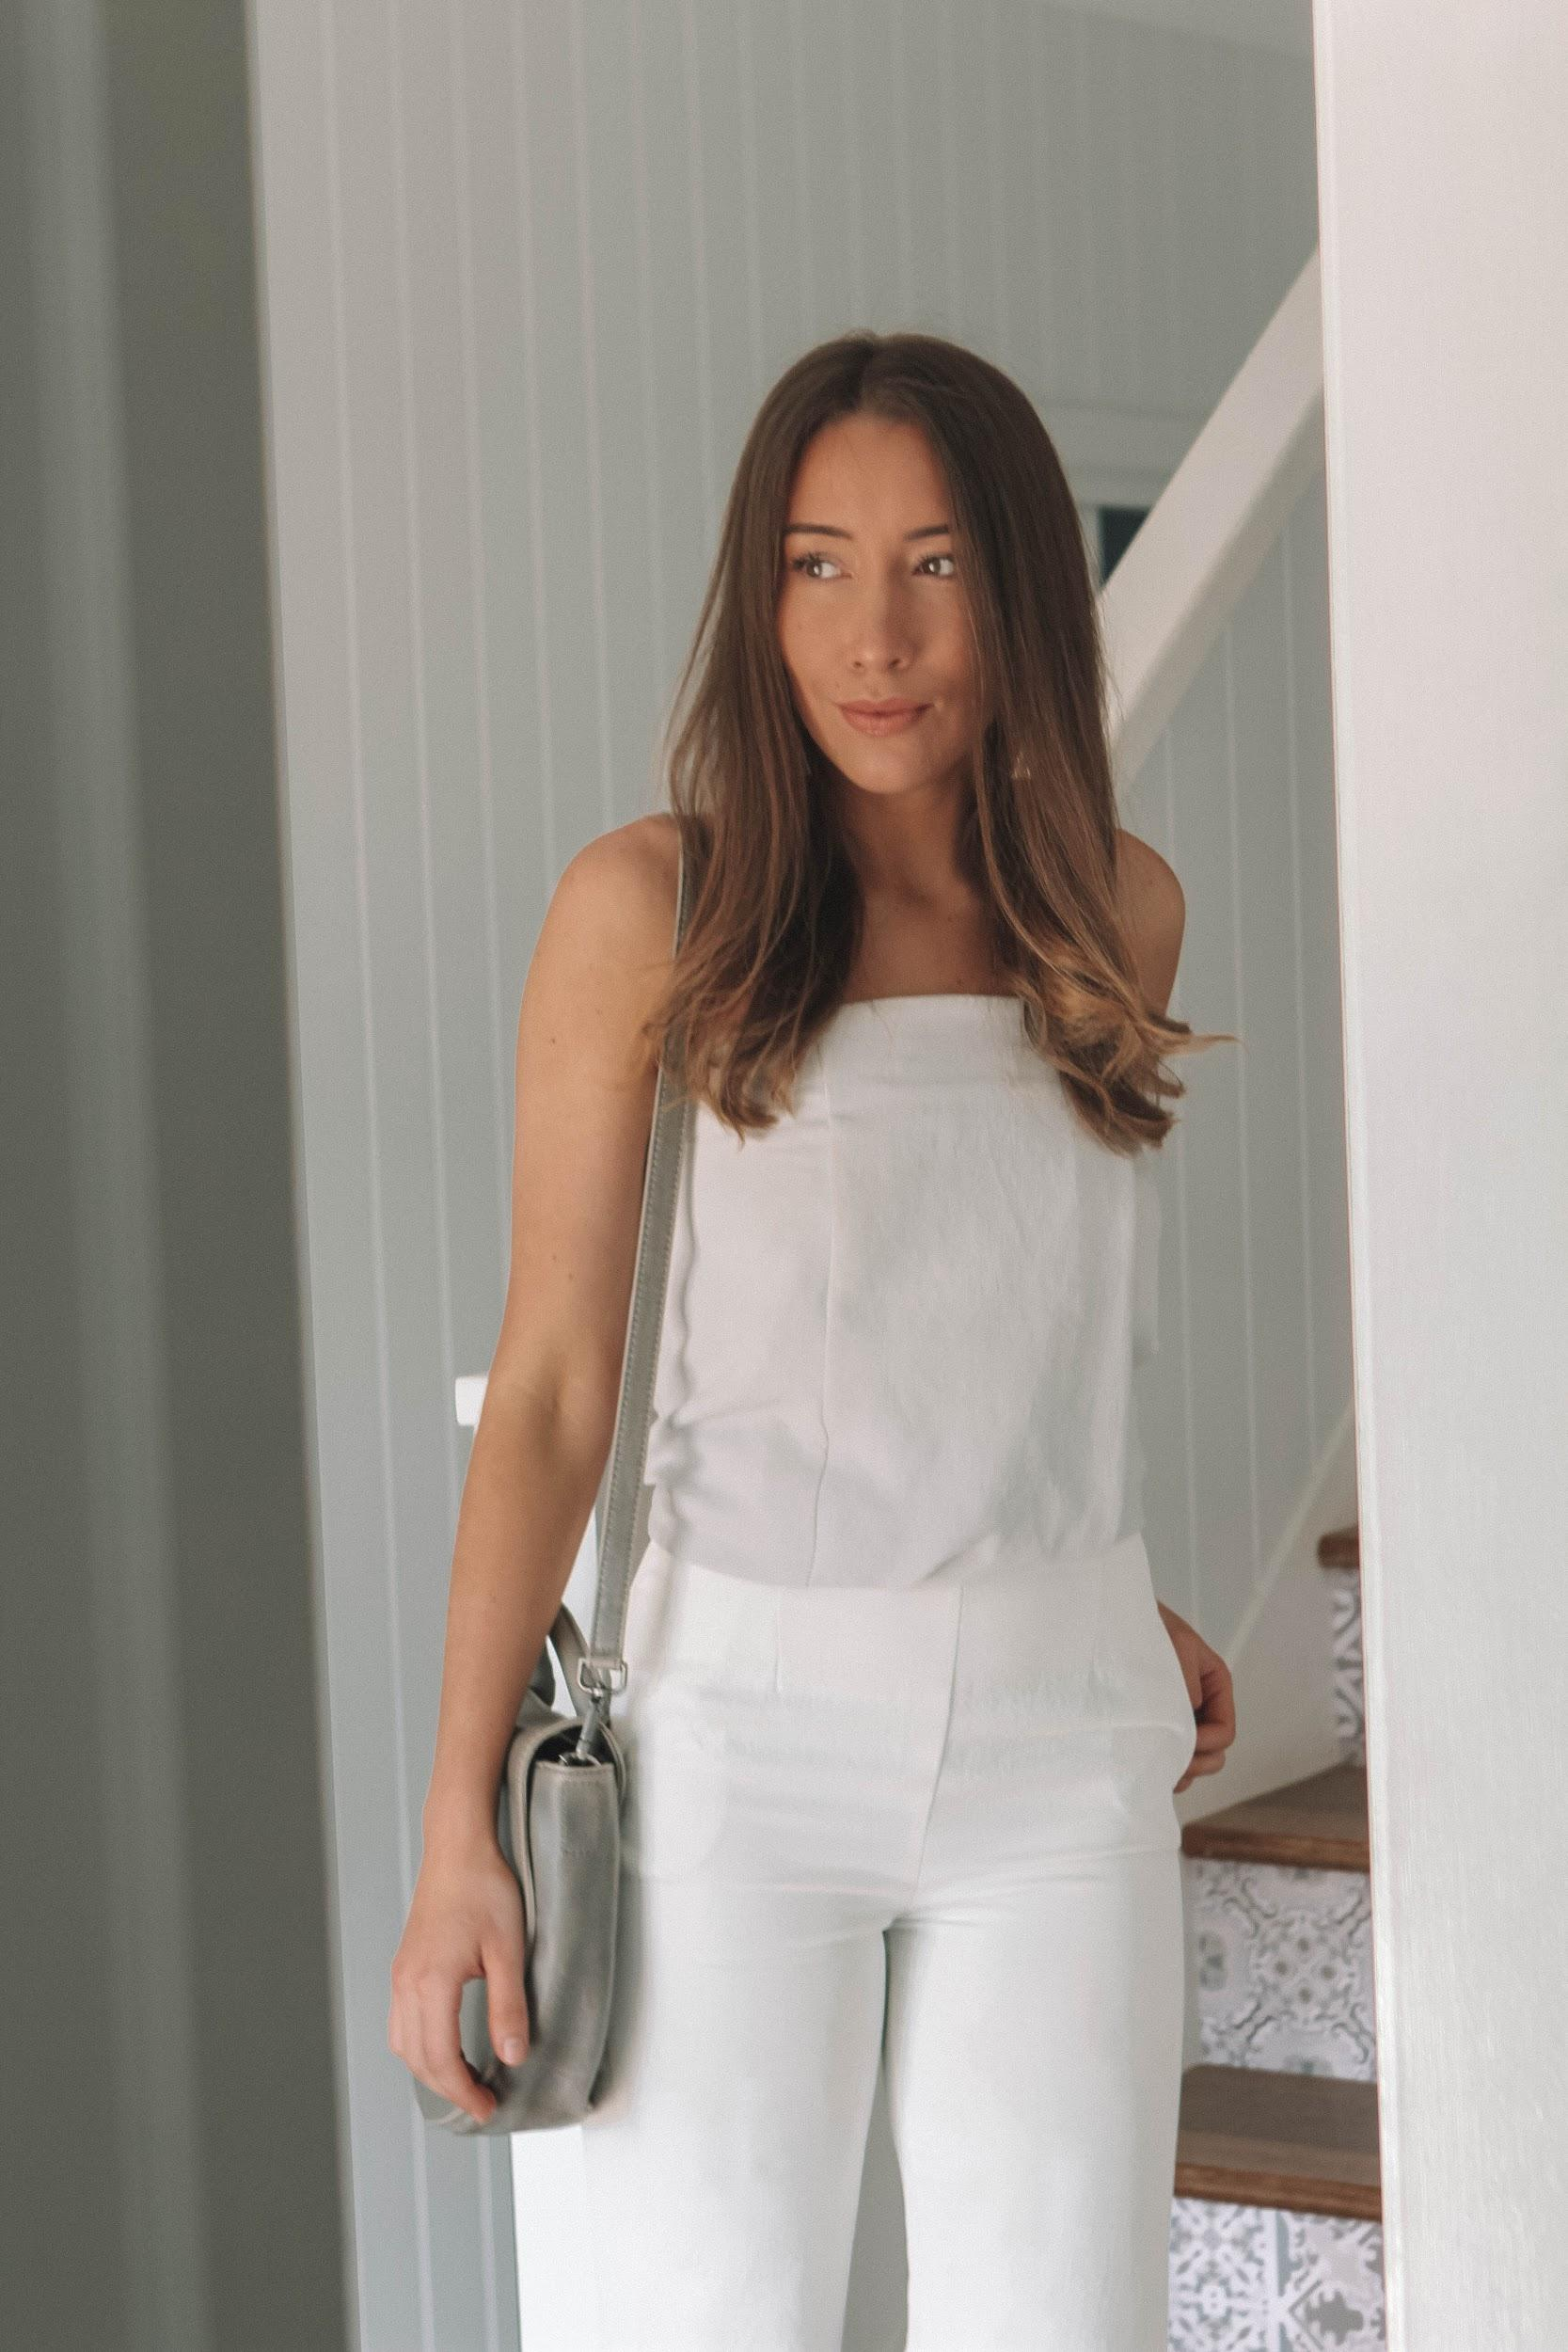 Coastal inspired style | A Week Of Consciously Curated Outfits With Amber Boyers, Founder Of BAIIA And The Conscious Cut on The Good Trade